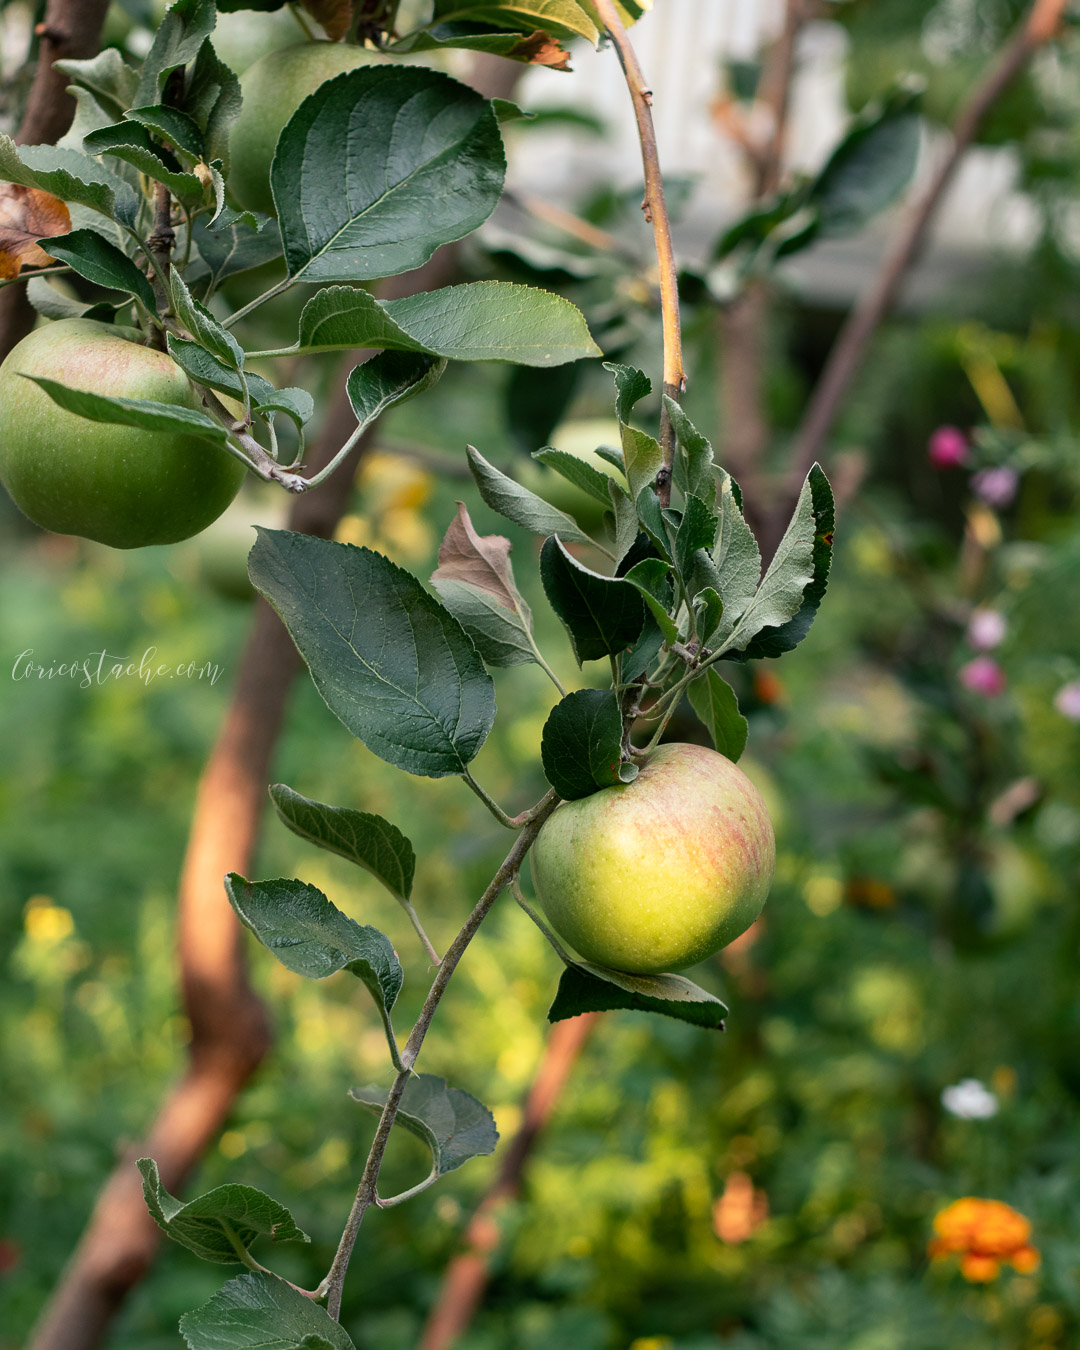 apples in the garden food photography